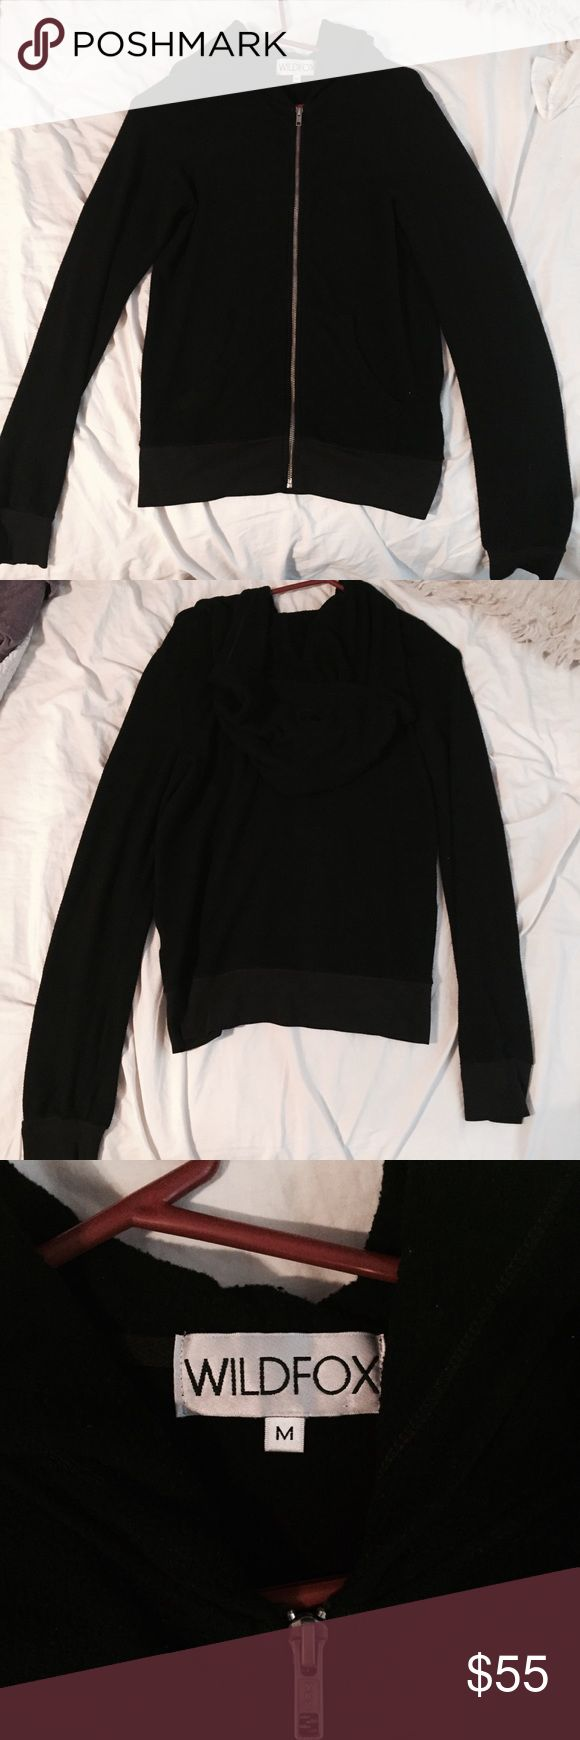 Wildfox black essential malibu zip up hoodie In great condition does gave pilling but thats what wildfox is known for other than that no flaws! Silver zipper. Size medium but very roomy. Feel free to ask any questions. Wildfox Tops Sweatshirts & Hoodies